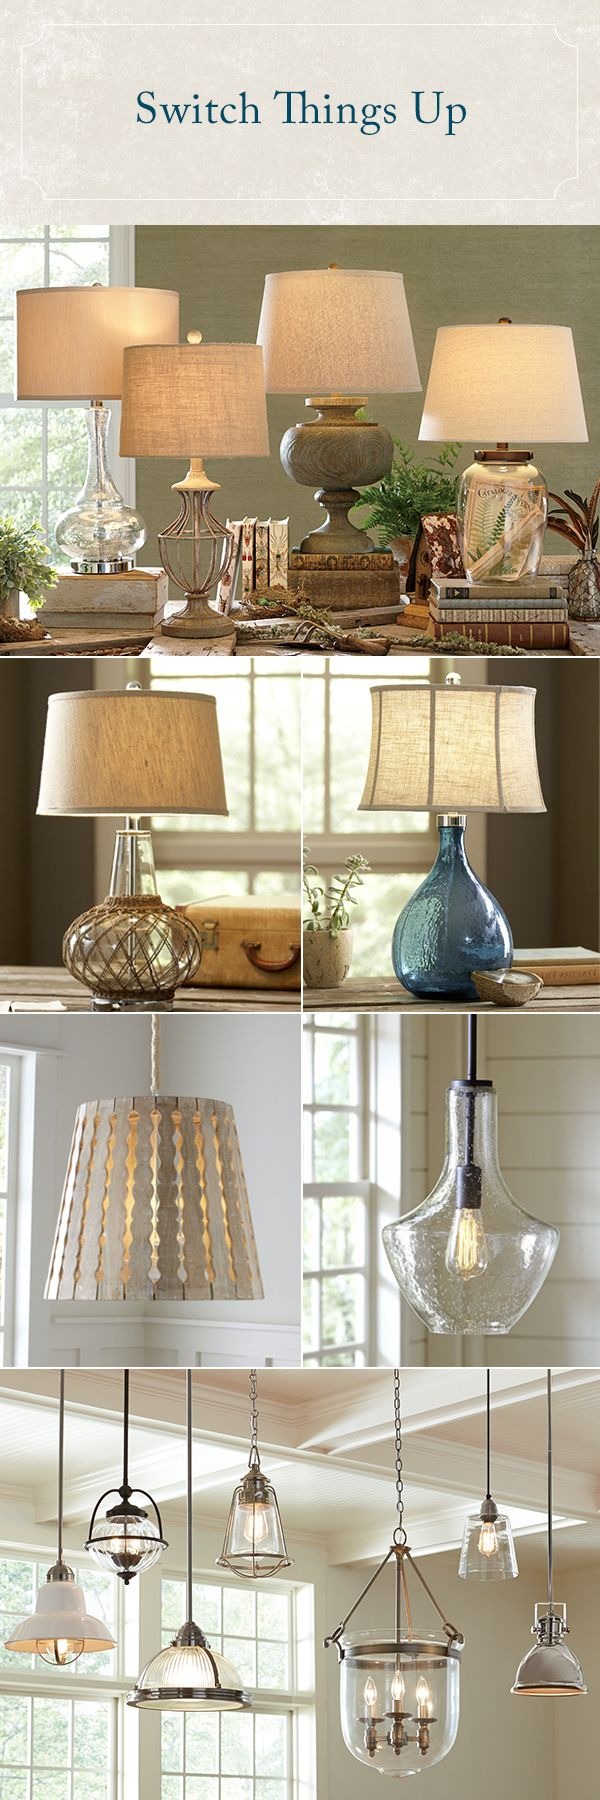 Looking for some bright decorating ideas? Whether it's a pendant, table lamp, or chandelier, lighting can have a major effect on the look and feel of your space. Check out Birch Lane's selection for everything from statement pieces to the ideal reading lamp and get ready to see your home in a whole new light.  Orders over $49 always ship free.  Plus, right now, all lighting is up to 20% off!